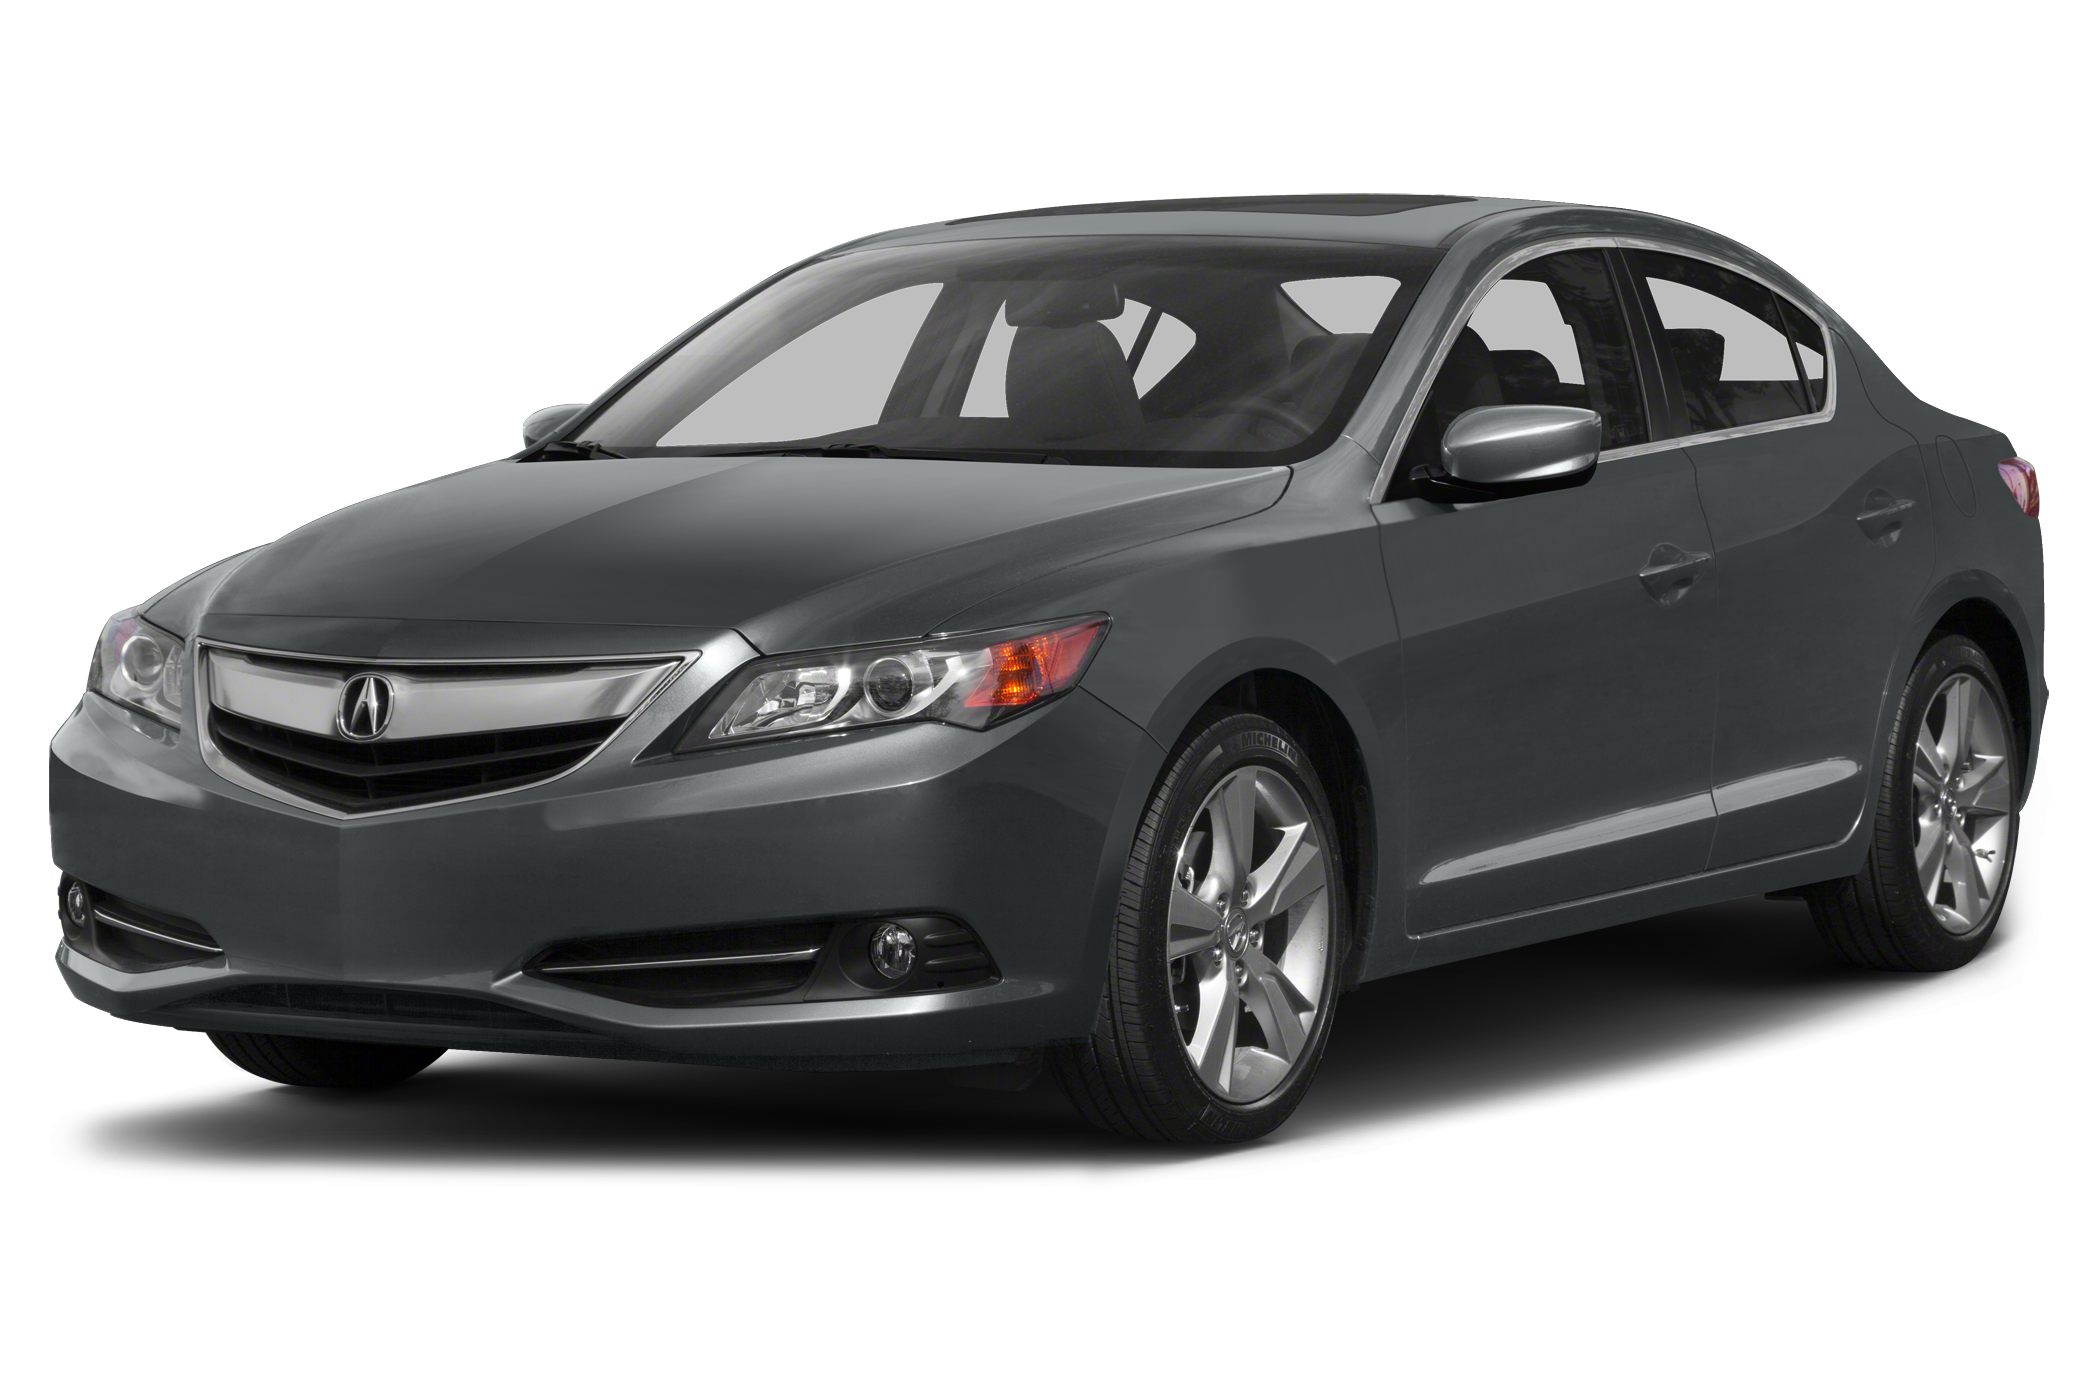 2013 Acura ILX 20 Acura Certified - Clean Carfax - One Owner - Backup Camera - Bluetooth - Alloy